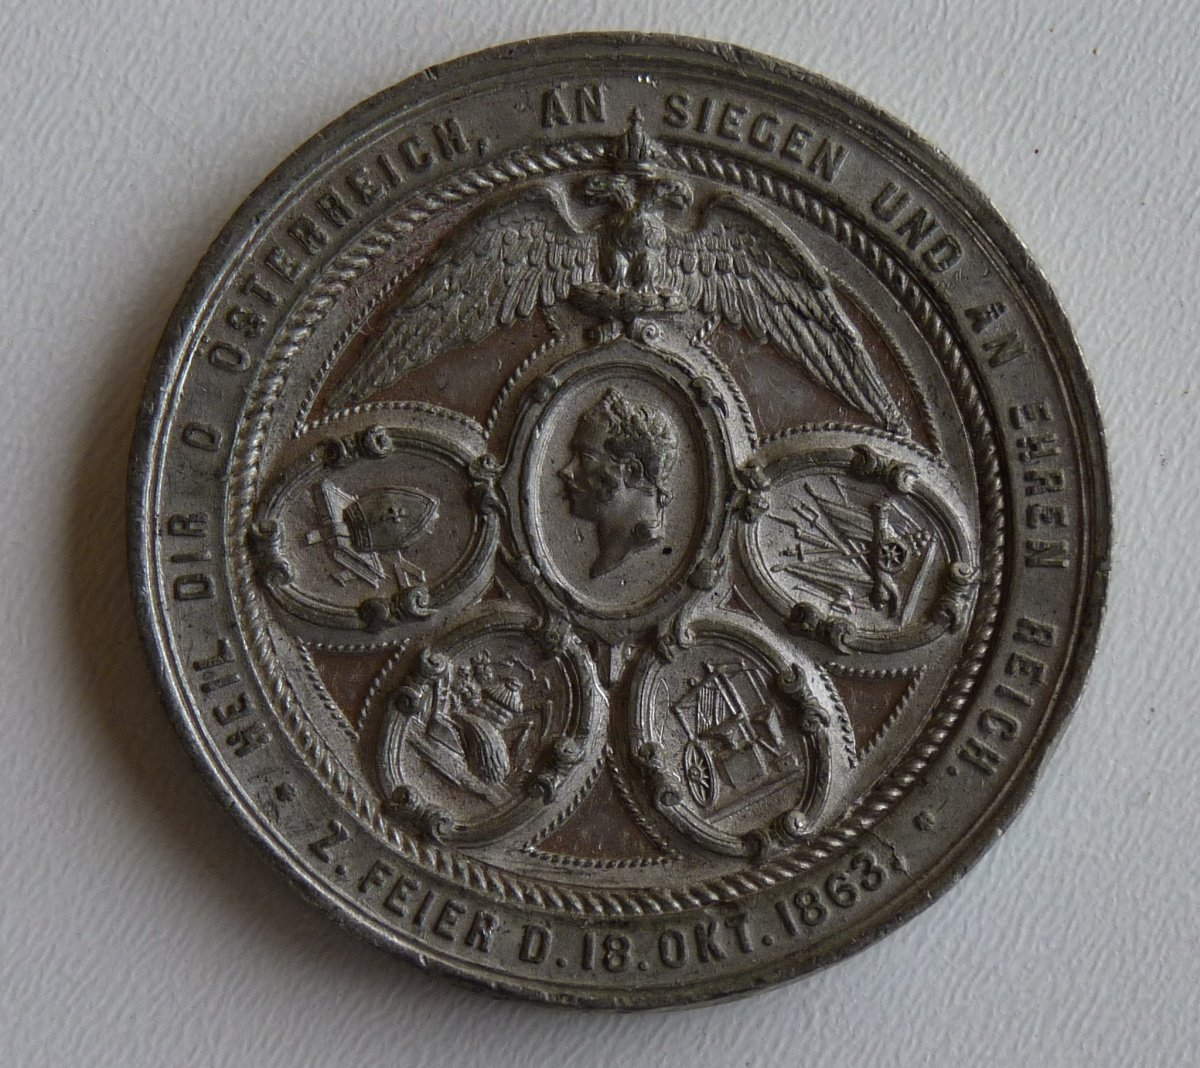 Imposing medal with Franz Joseph from 1863 - Vienna